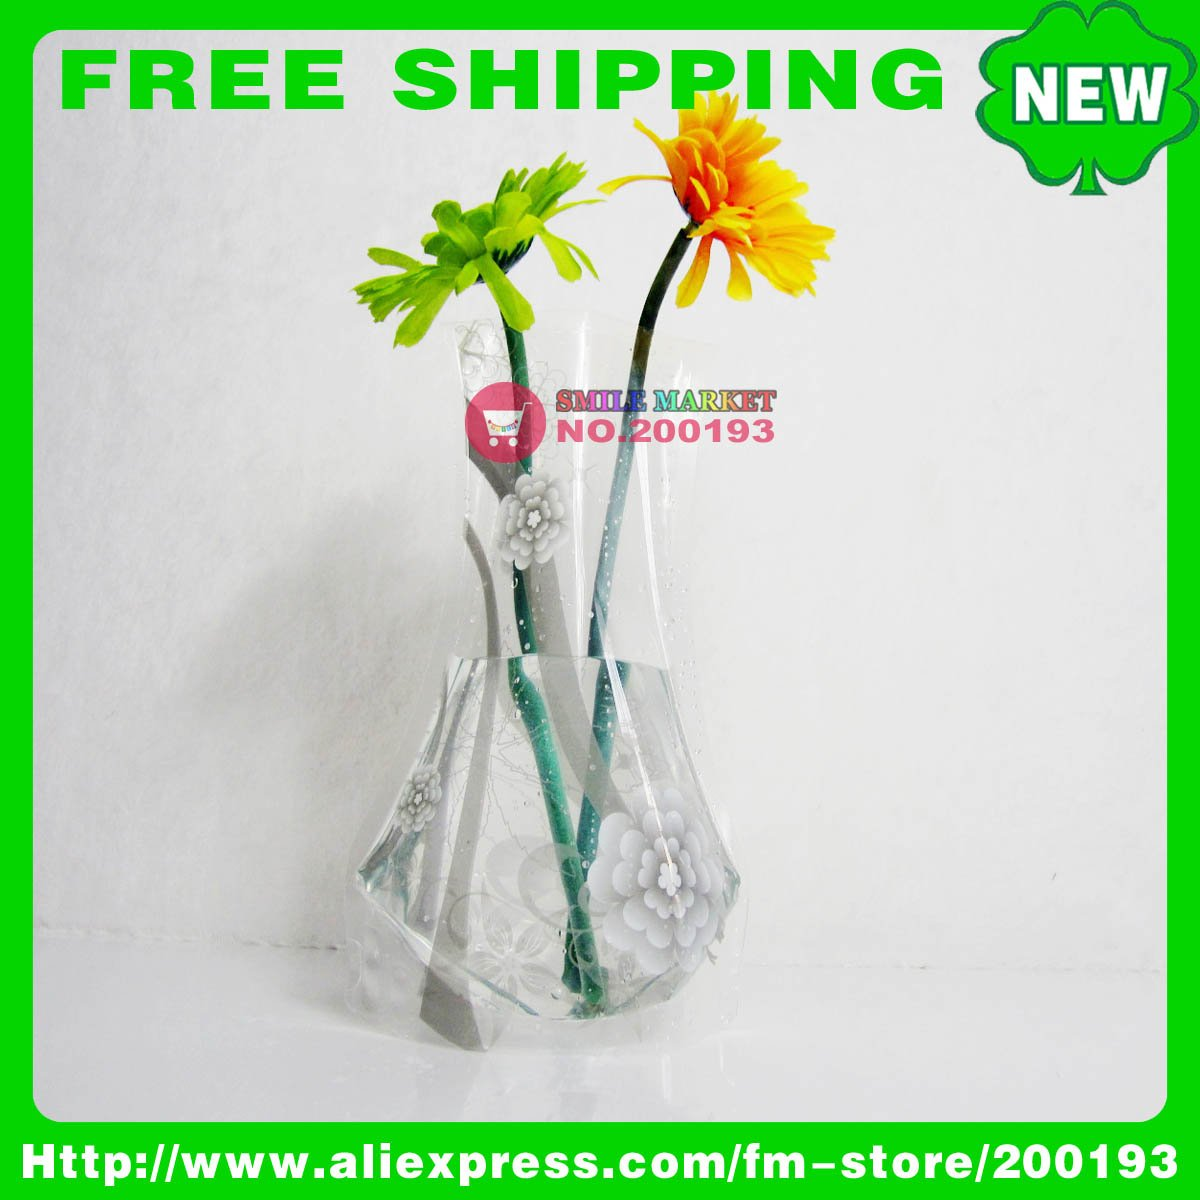 FREE SHIPPING 100PCS/LOT ASSORTED COLOR&STYLE USED HOME PROMOTIONAL GIFTS B18-4 PLASTIC FOLDABLE VASE 2011 NEW IDEA PRODUCT(China (Mainland))